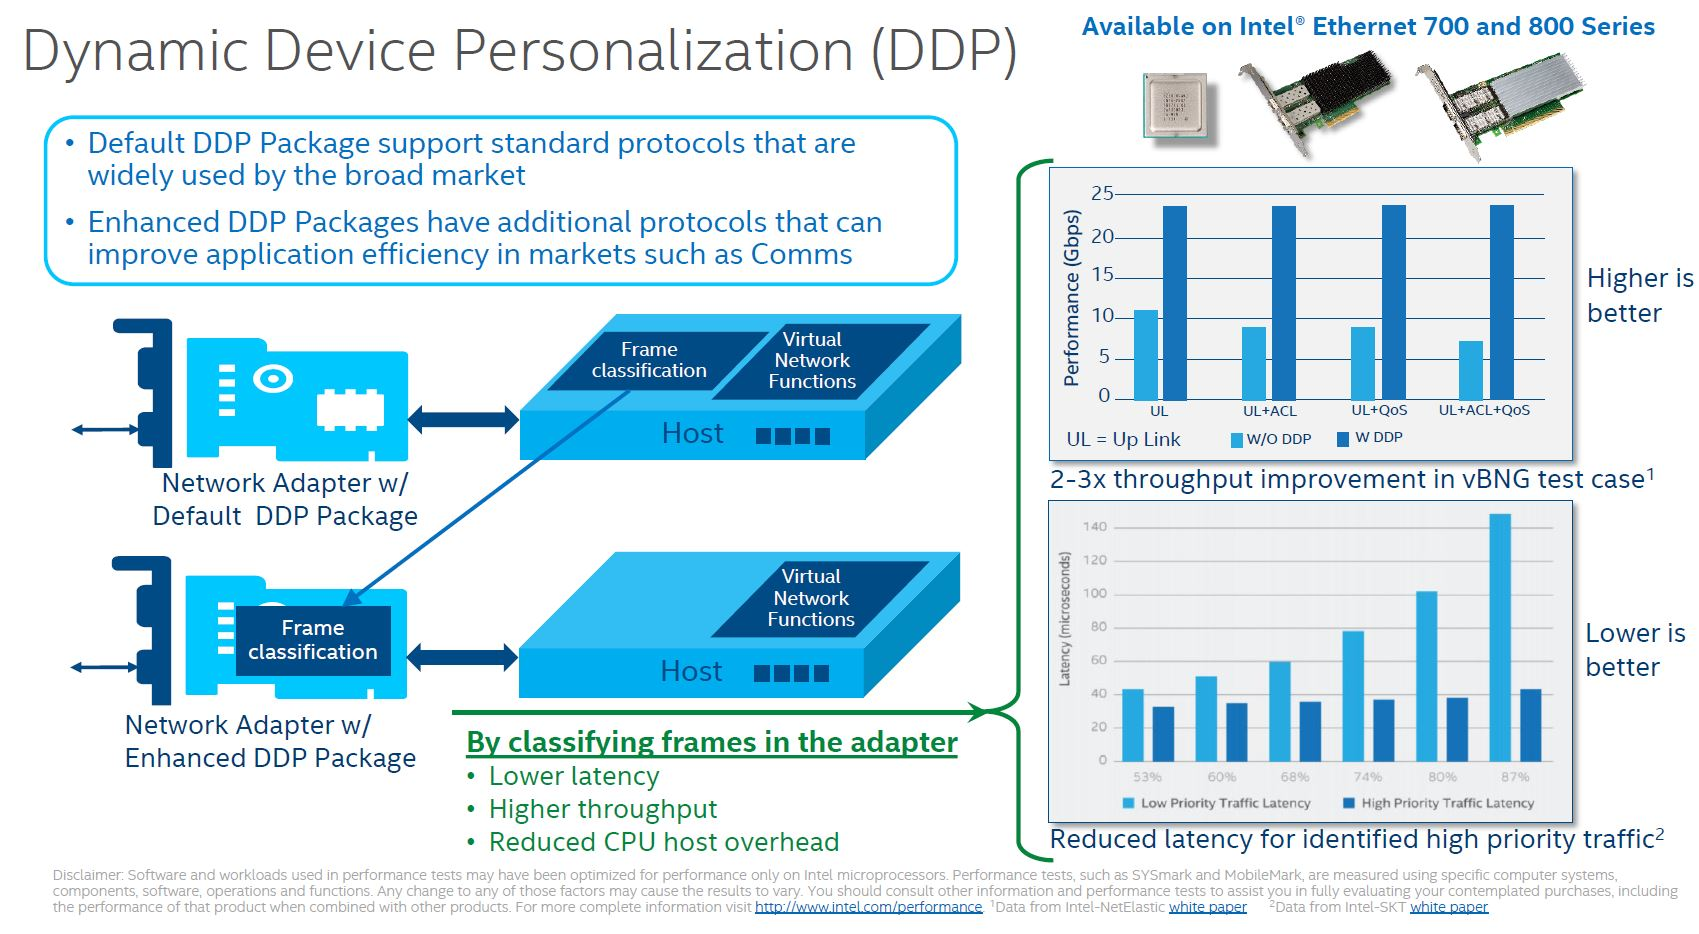 Intel 800 Series DDP Dynamic Device Personalization Overview